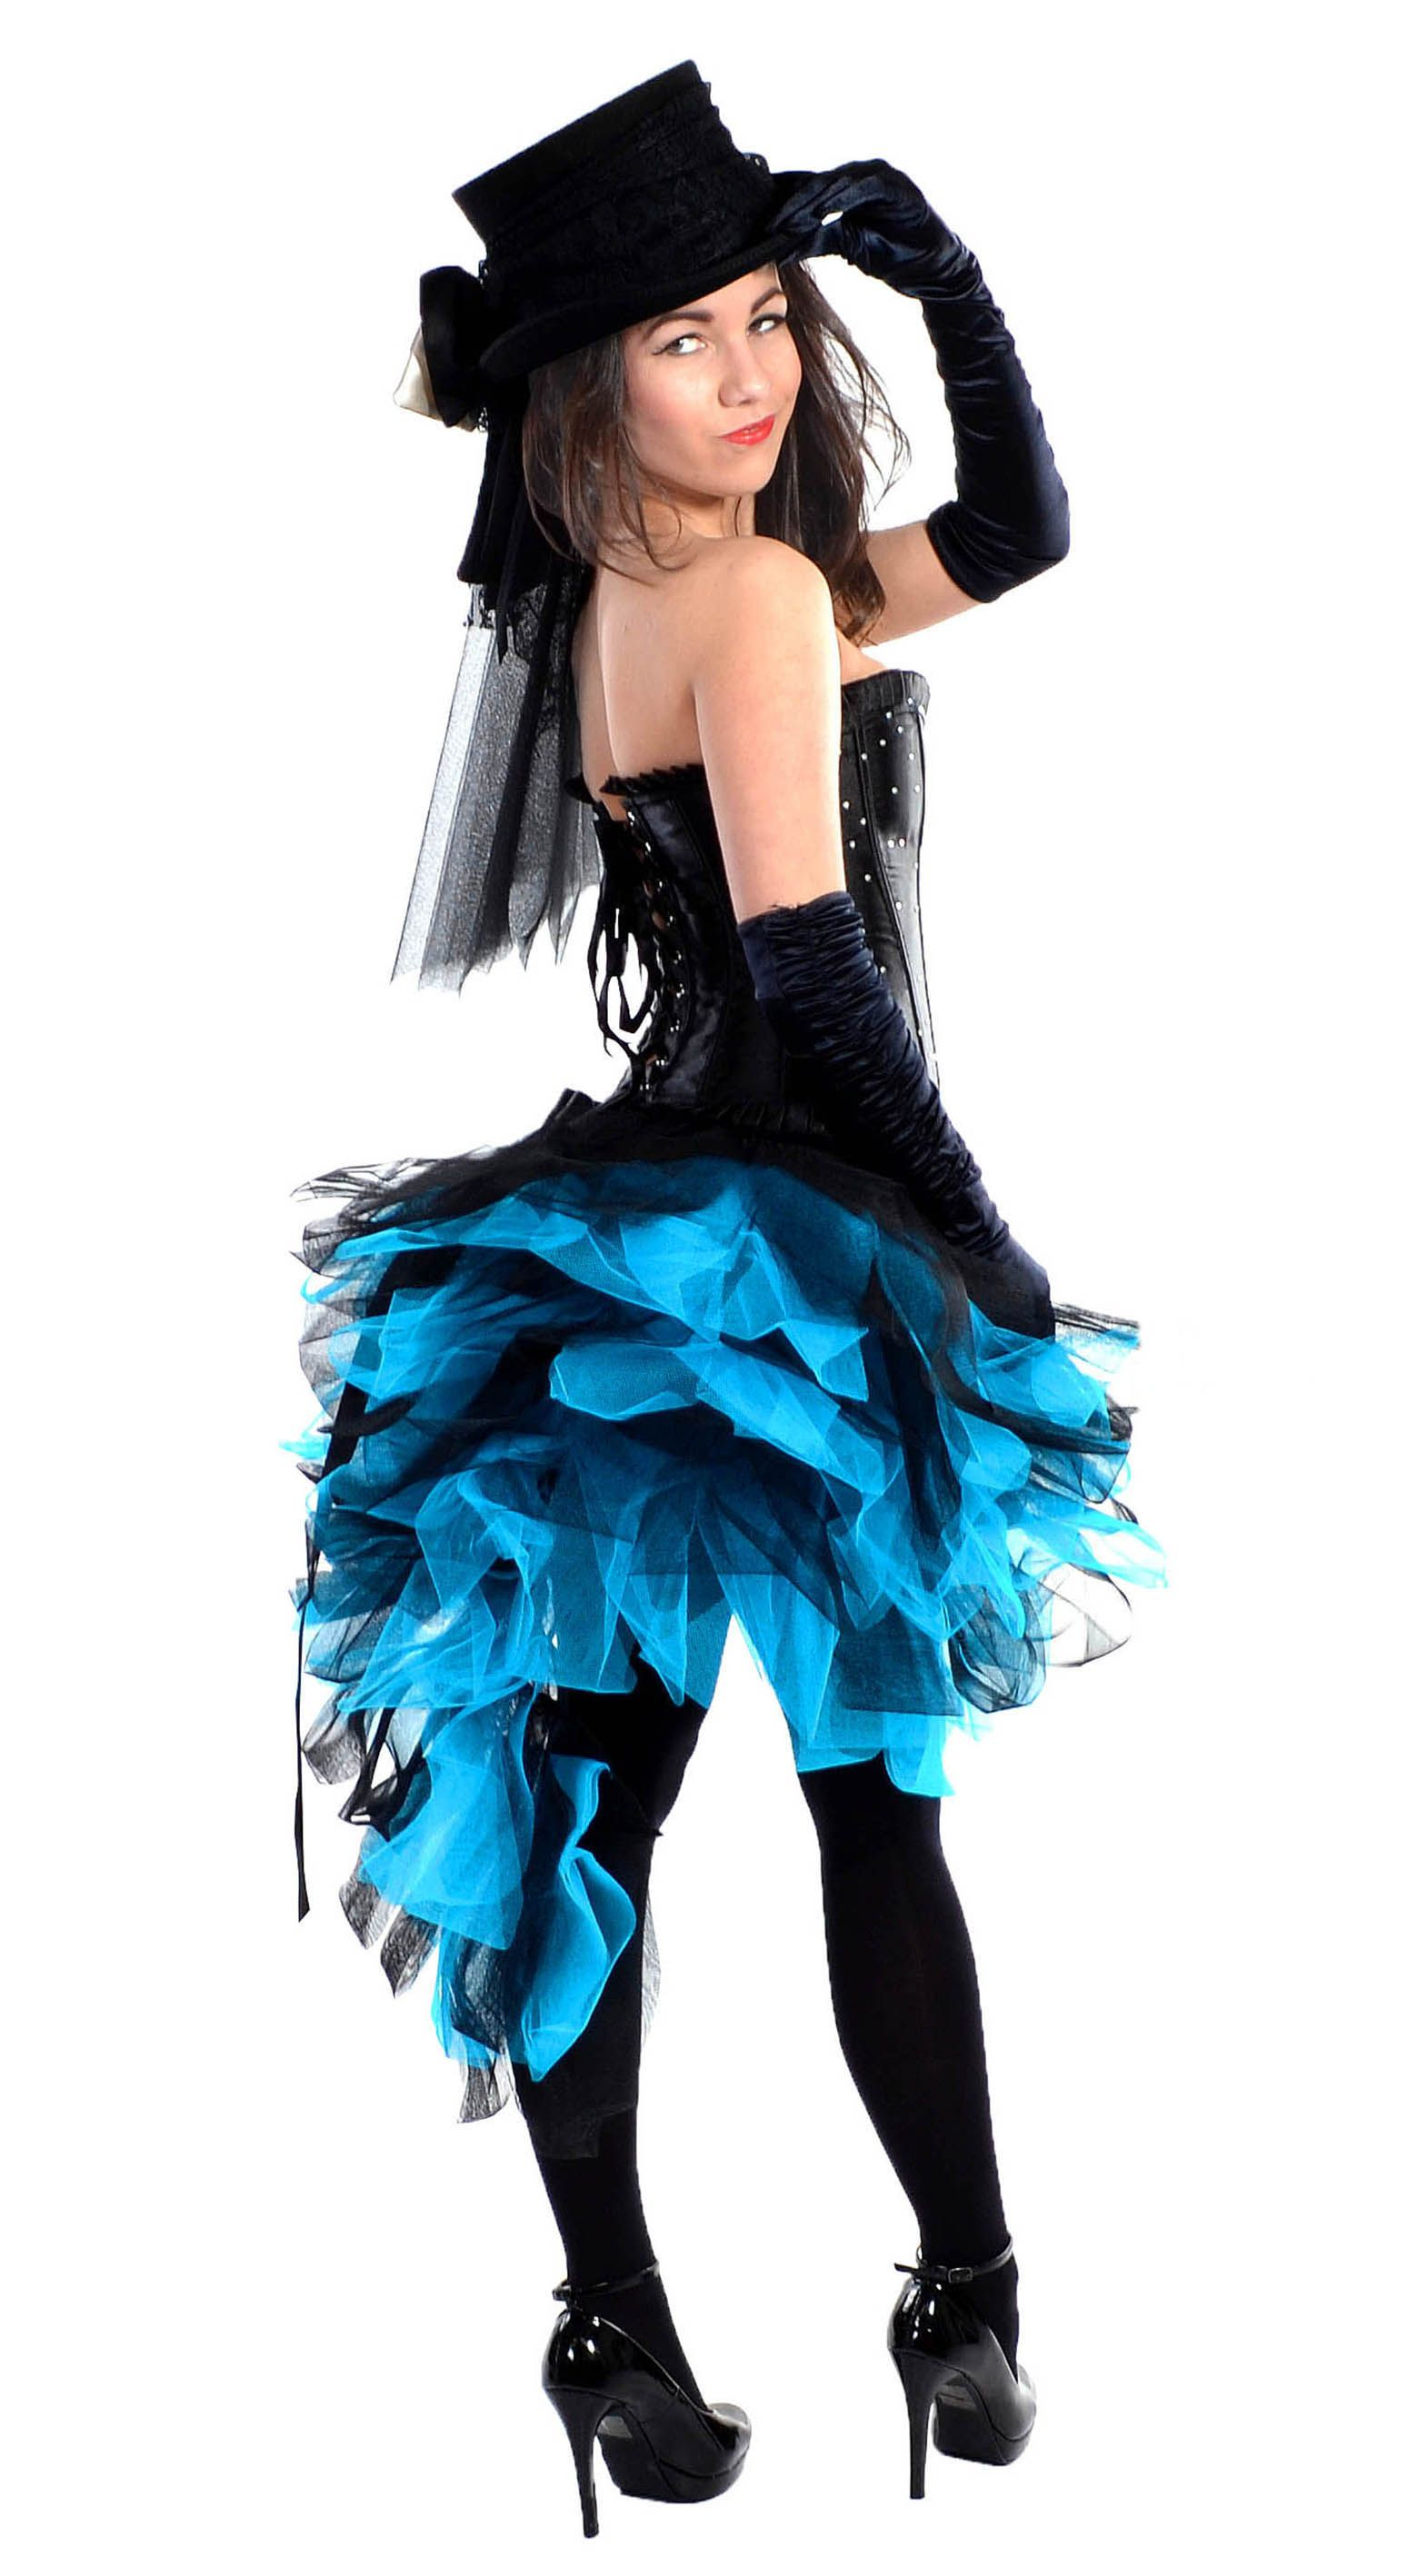 burlesque outfits | Mardi Gras Costumes - Burlesque Outfits Mardi Gras Costumes Halloween Pinterest